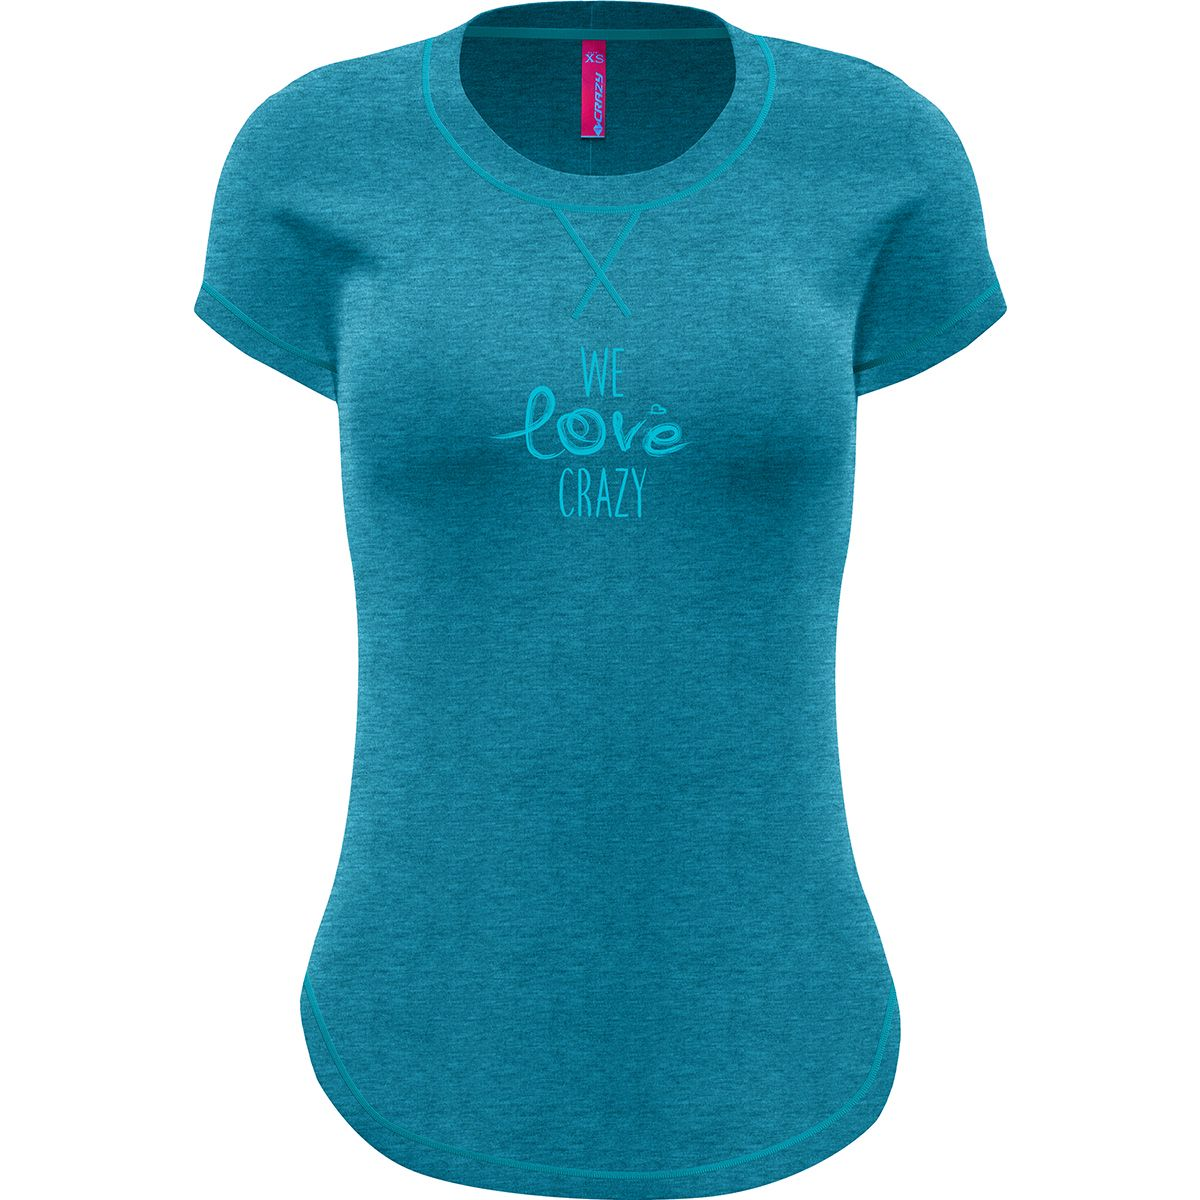 Crazy Idea Damen Instinct T-Shirt (Größe XS, Blau) | T-Shirts Funktion > Damen